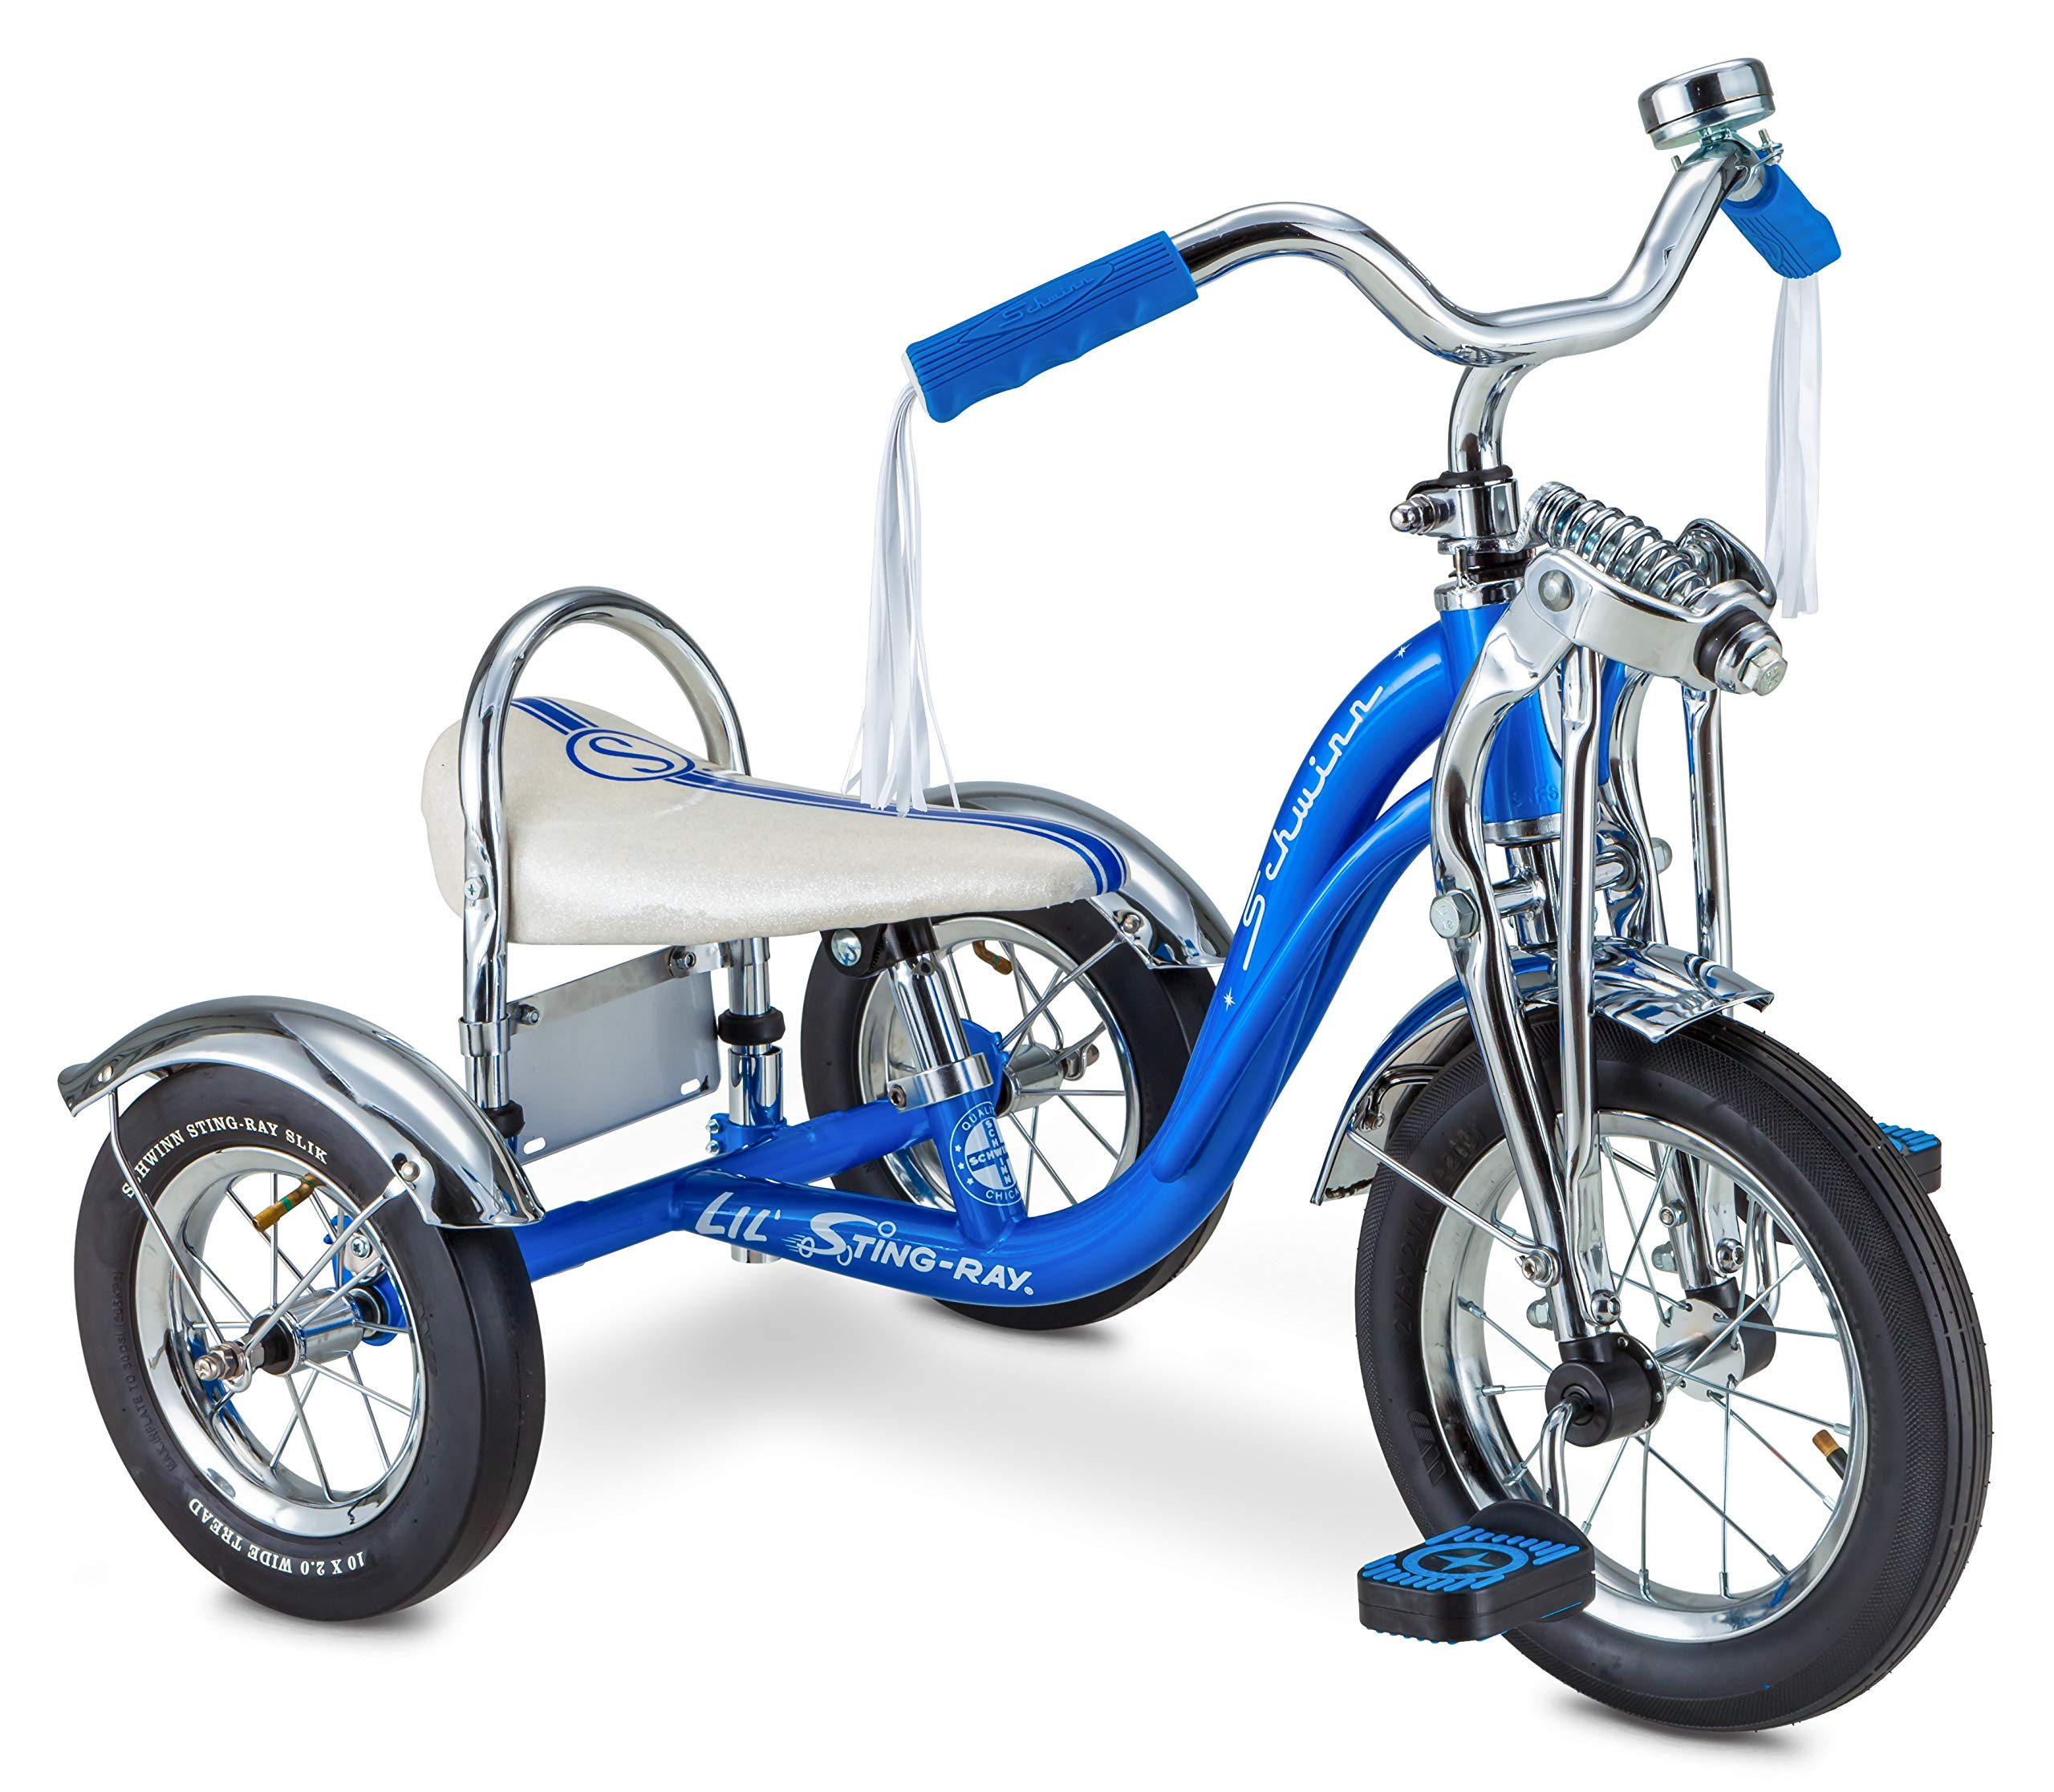 Schwinn Lil' Sting-Ray Super Deluxe Tricycle for Kids 2-4 Years Old, 12'' Front Wheel, Blue